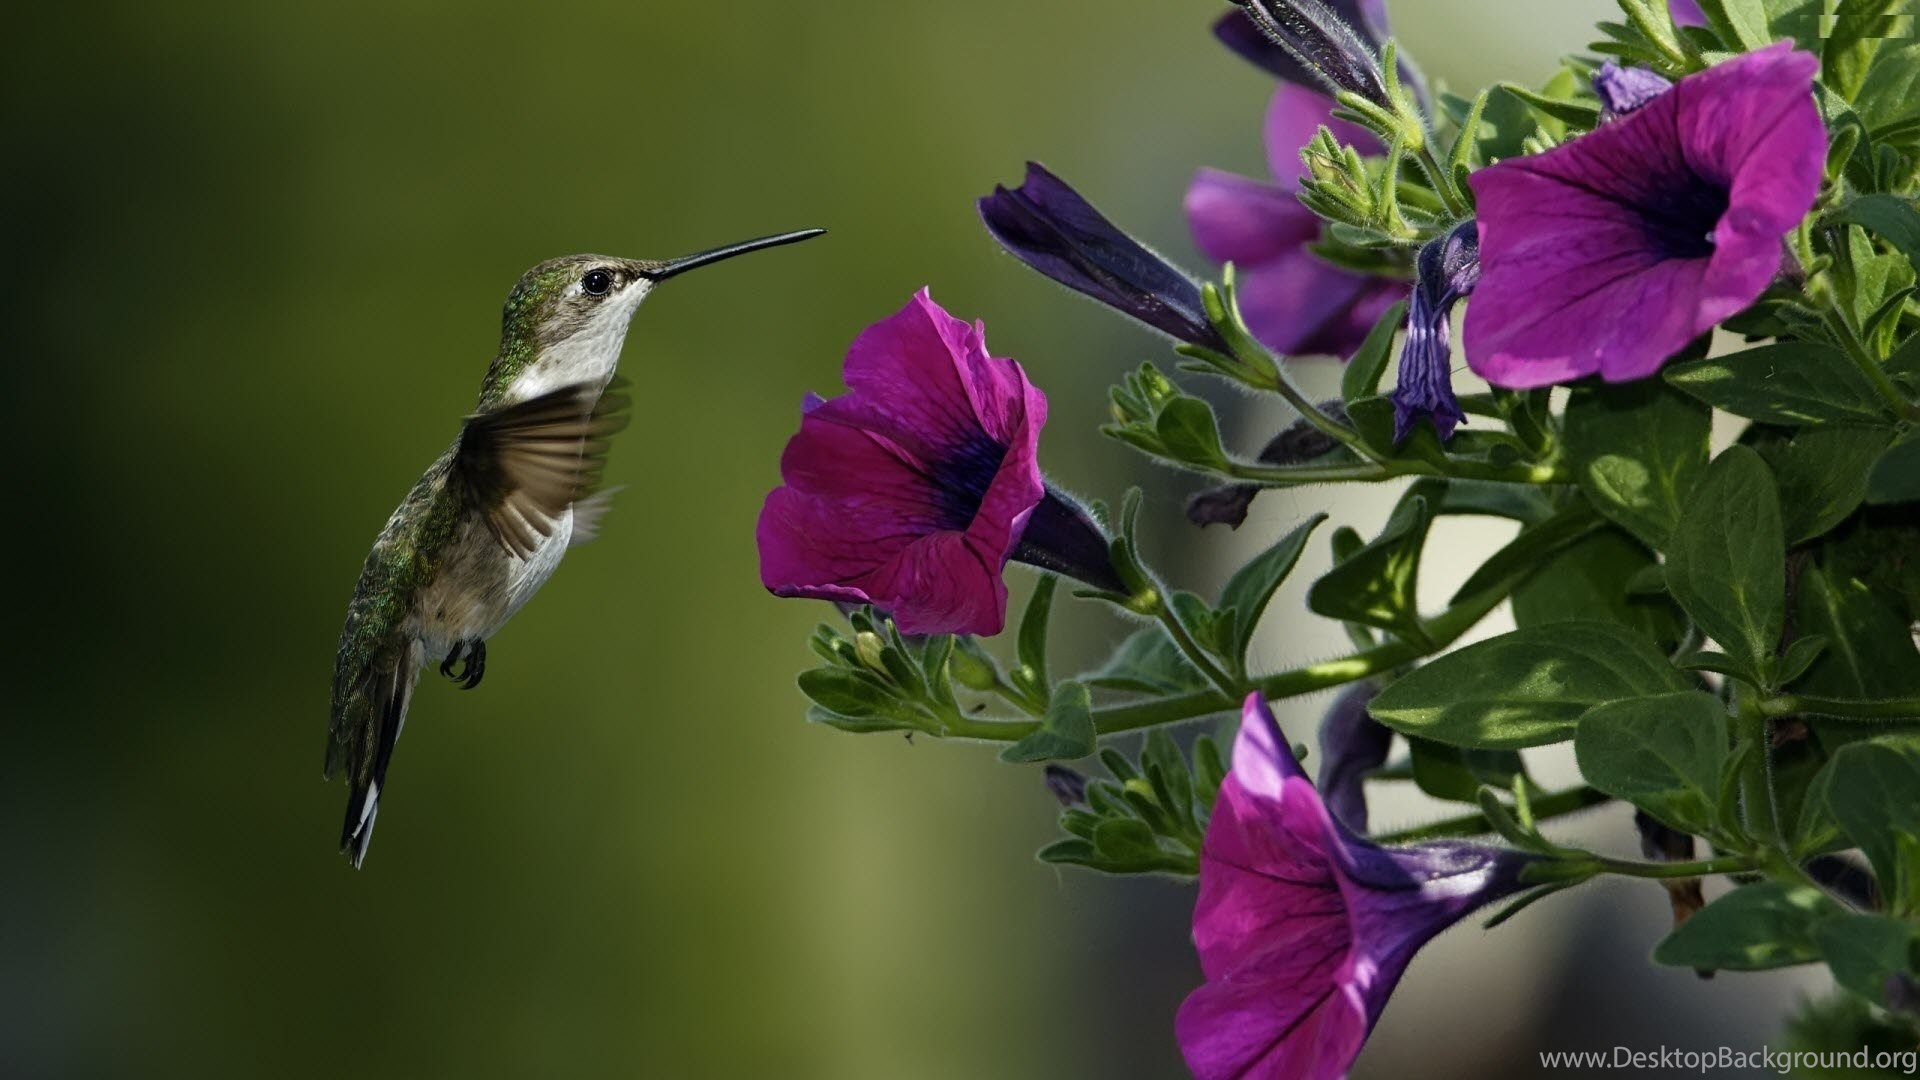 Purple Flowers And Bird Full Screen High Resolution Wallpapers